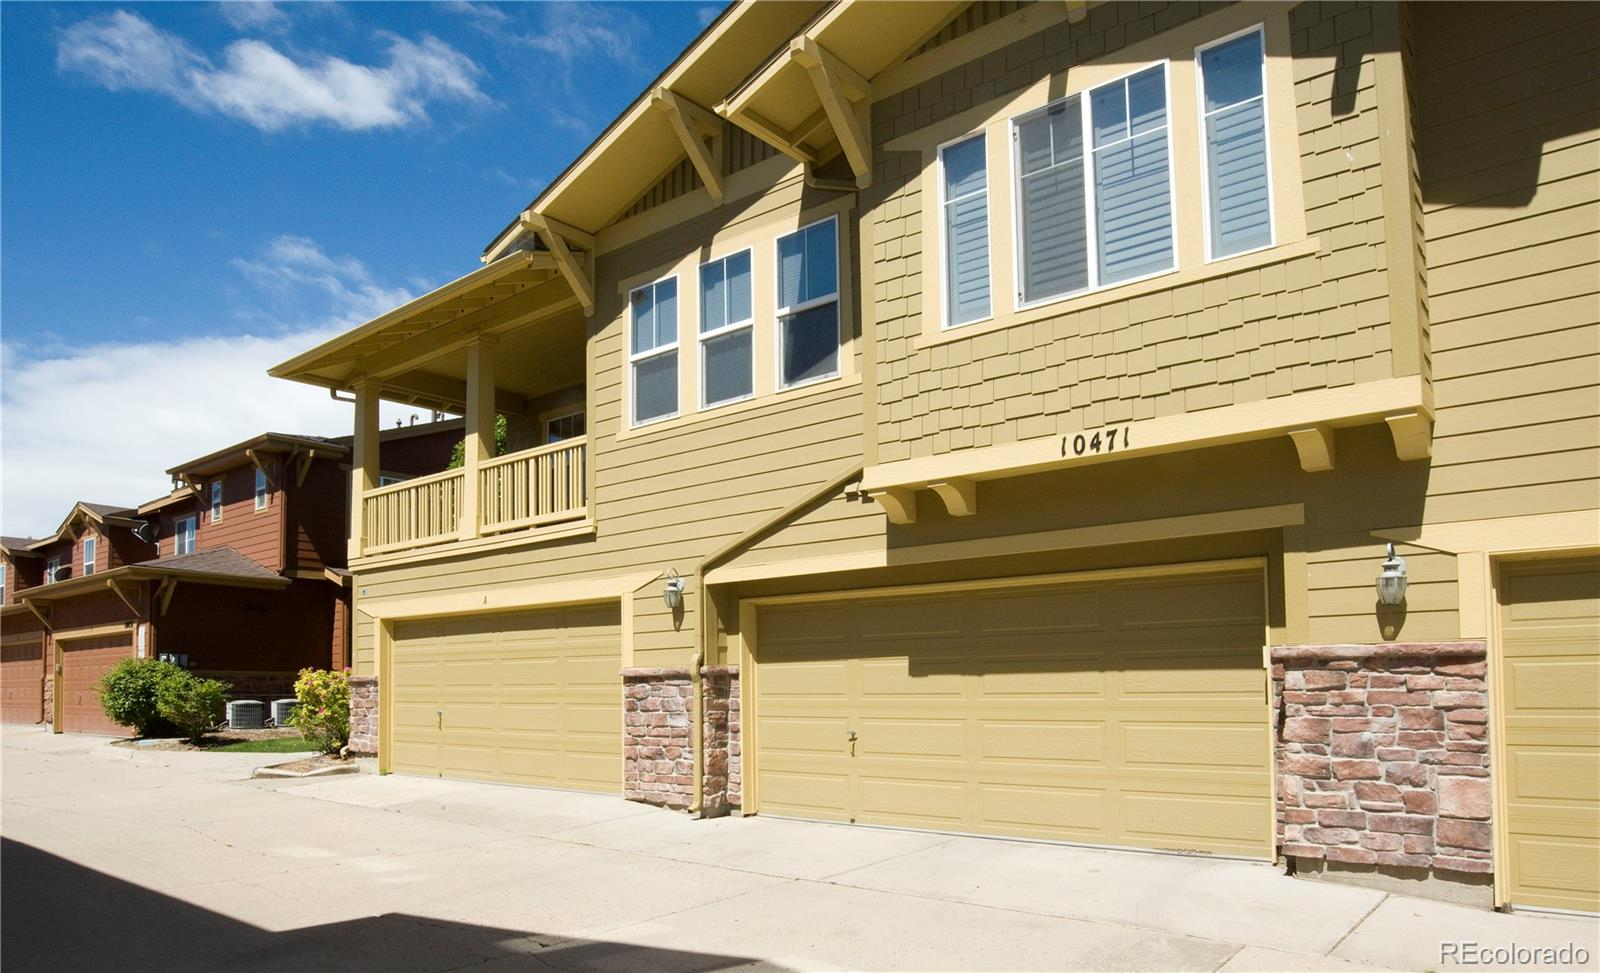 MLS# 7527123 - 21 - 10471 Truckee Street #B, Commerce City, CO 80022